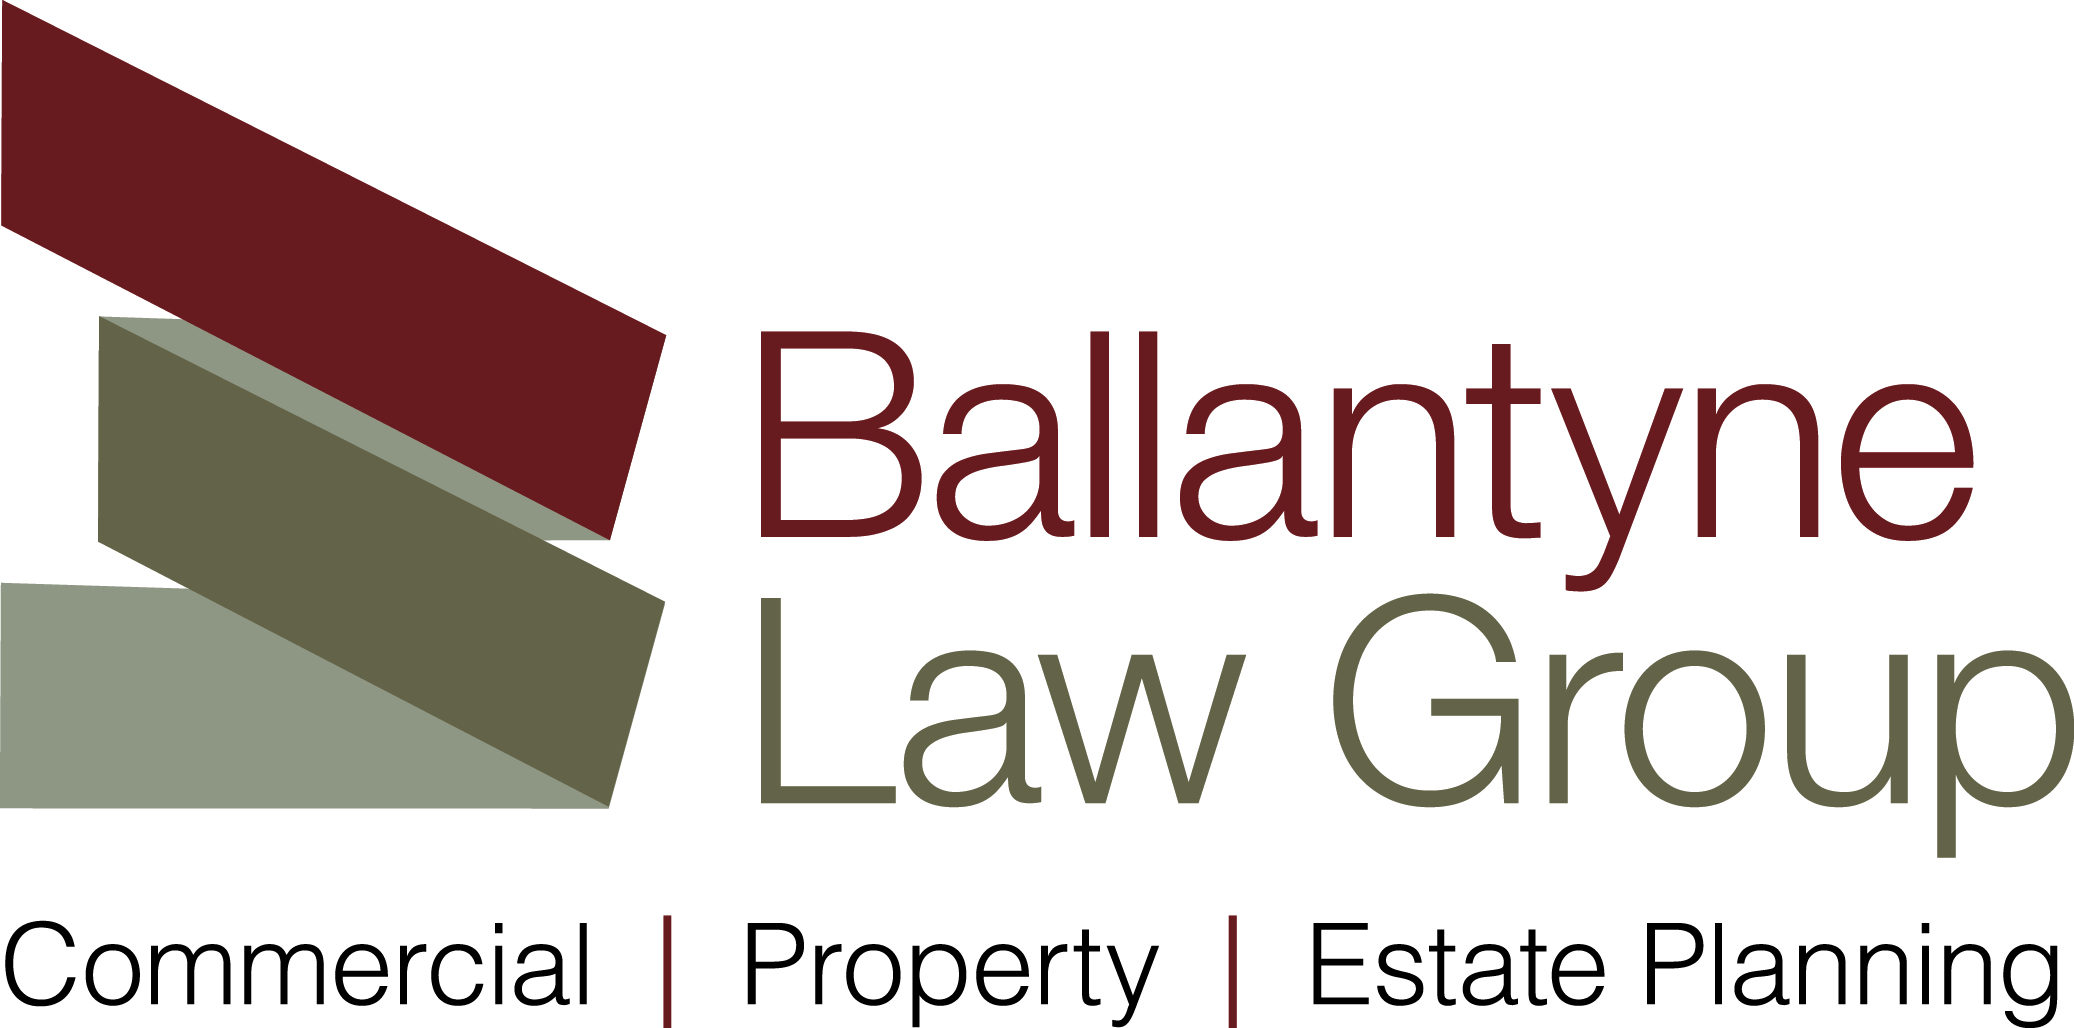 Ballantyne Law Group